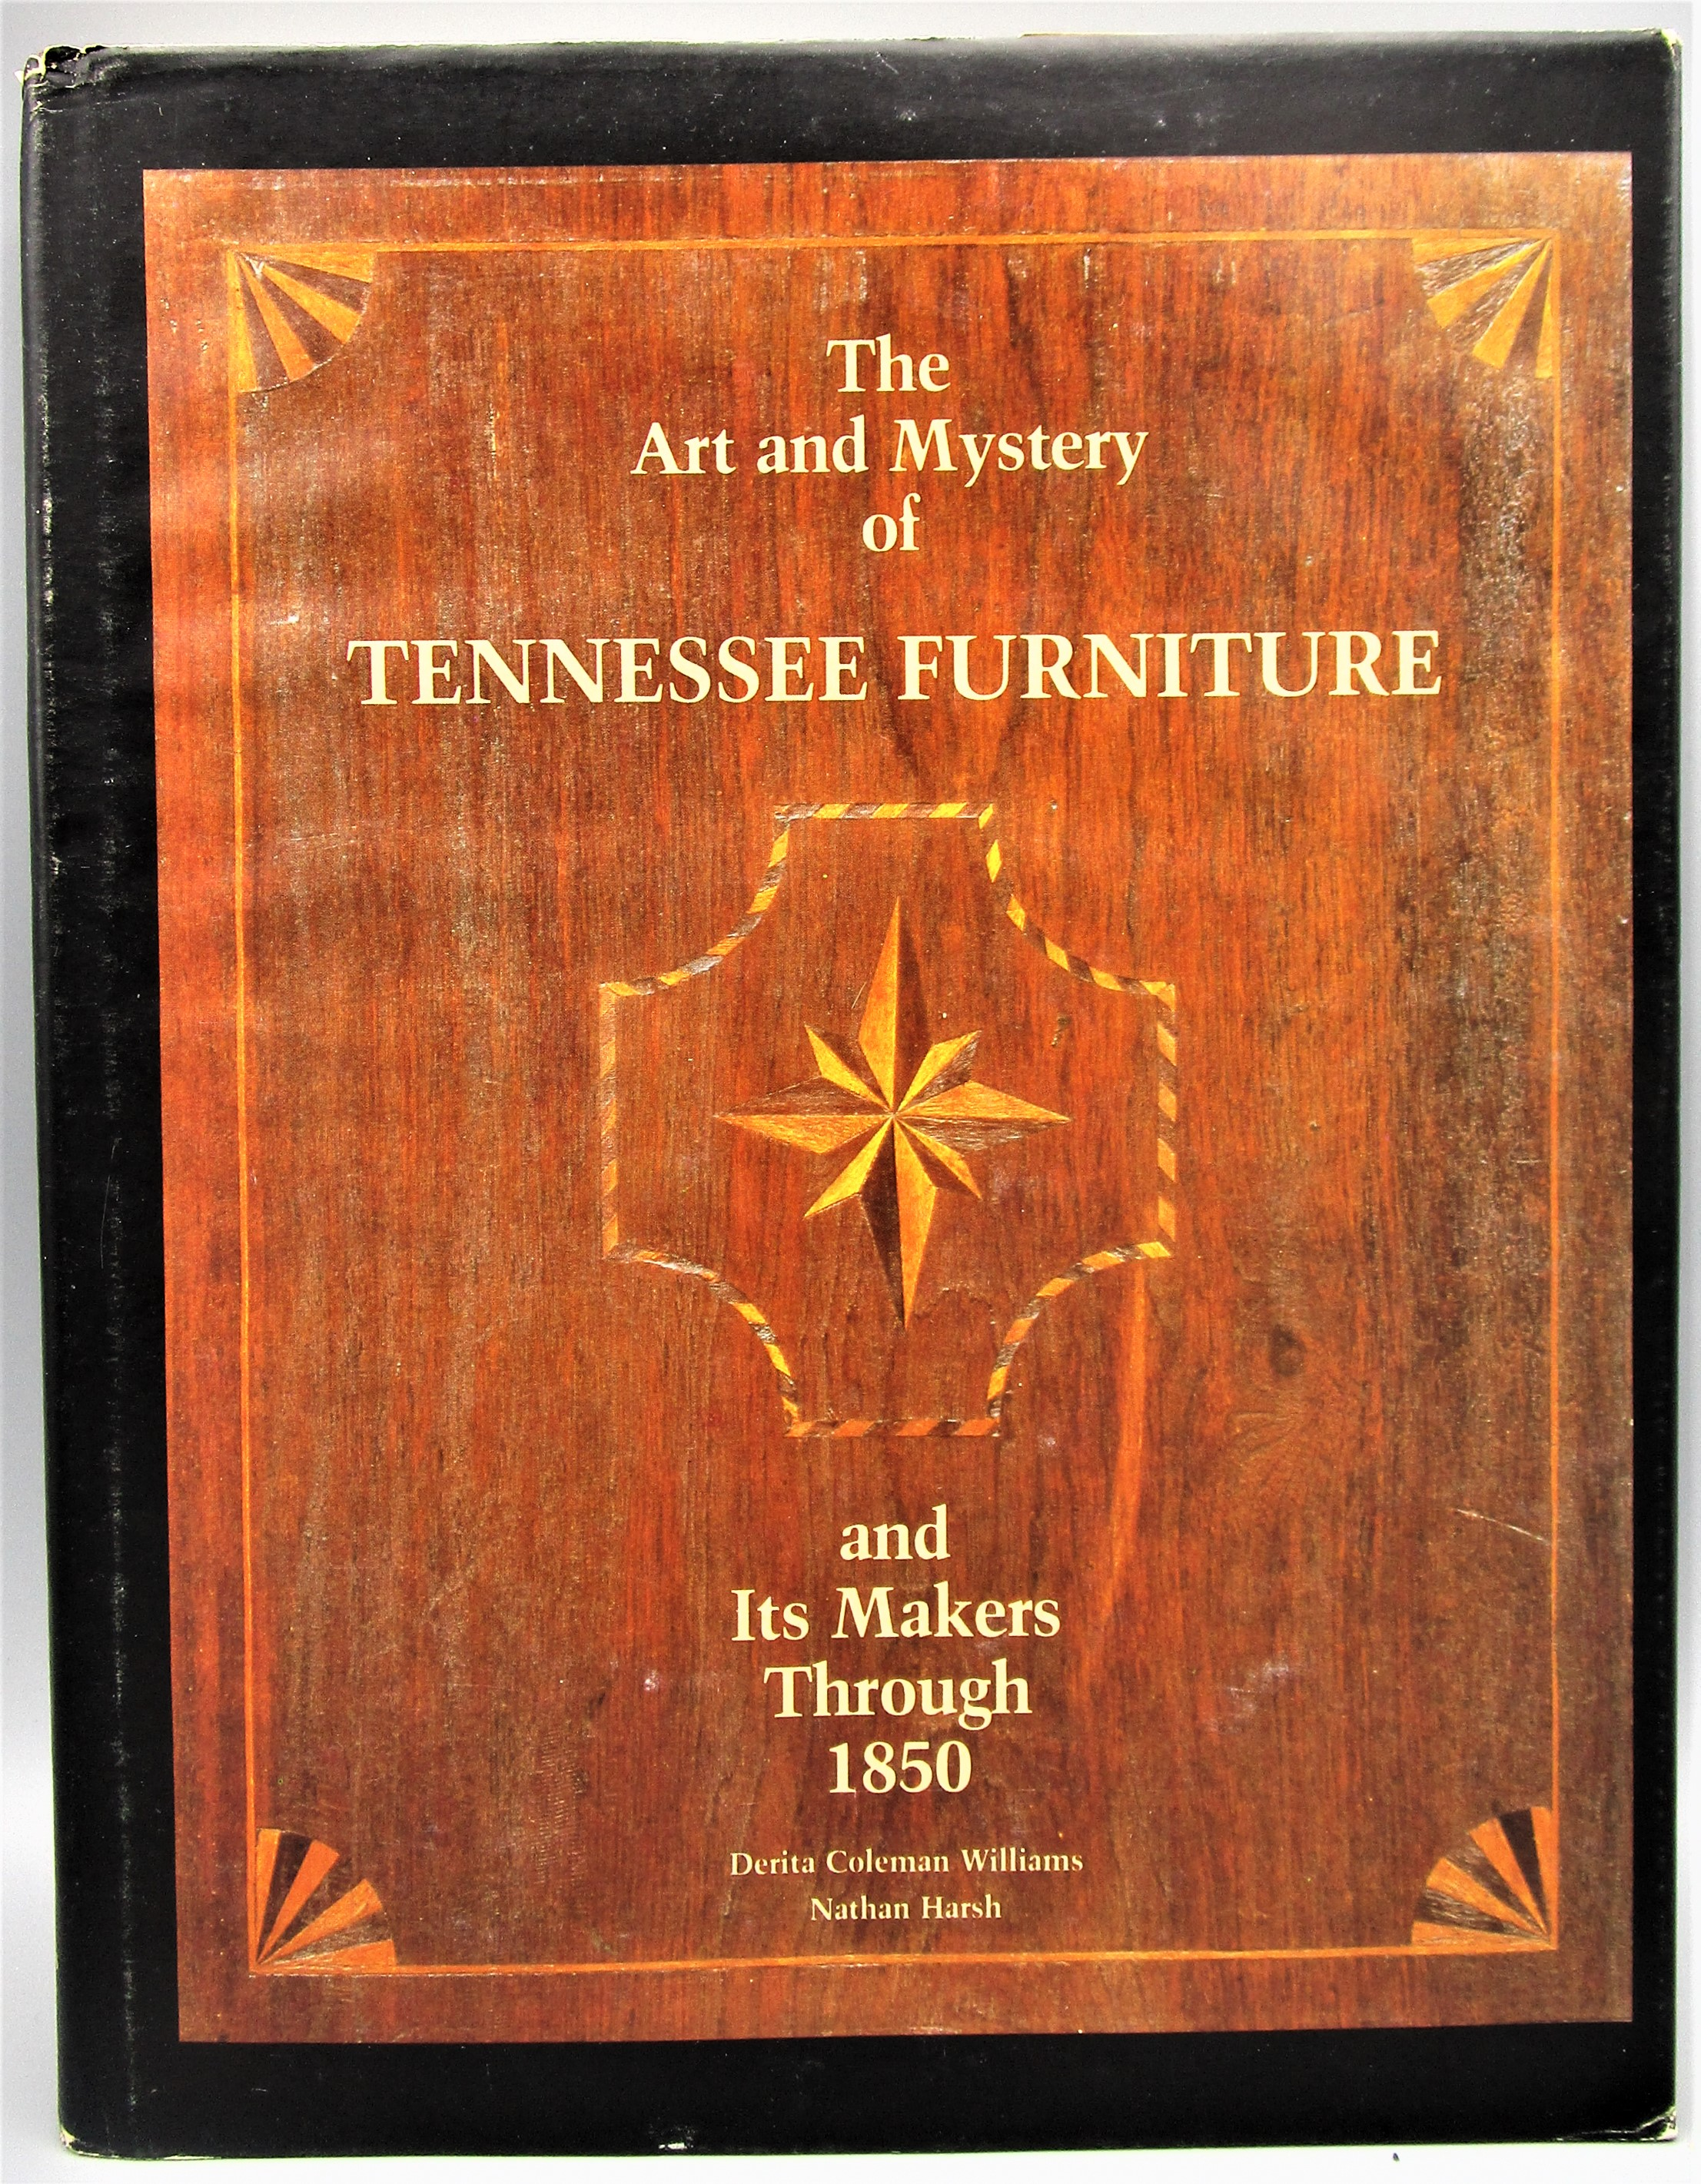 ART AND MYSTERY OF TENNESSEE FURNITURE, by D.C. Williams; N. Harsh - 1988 [1st Ed]